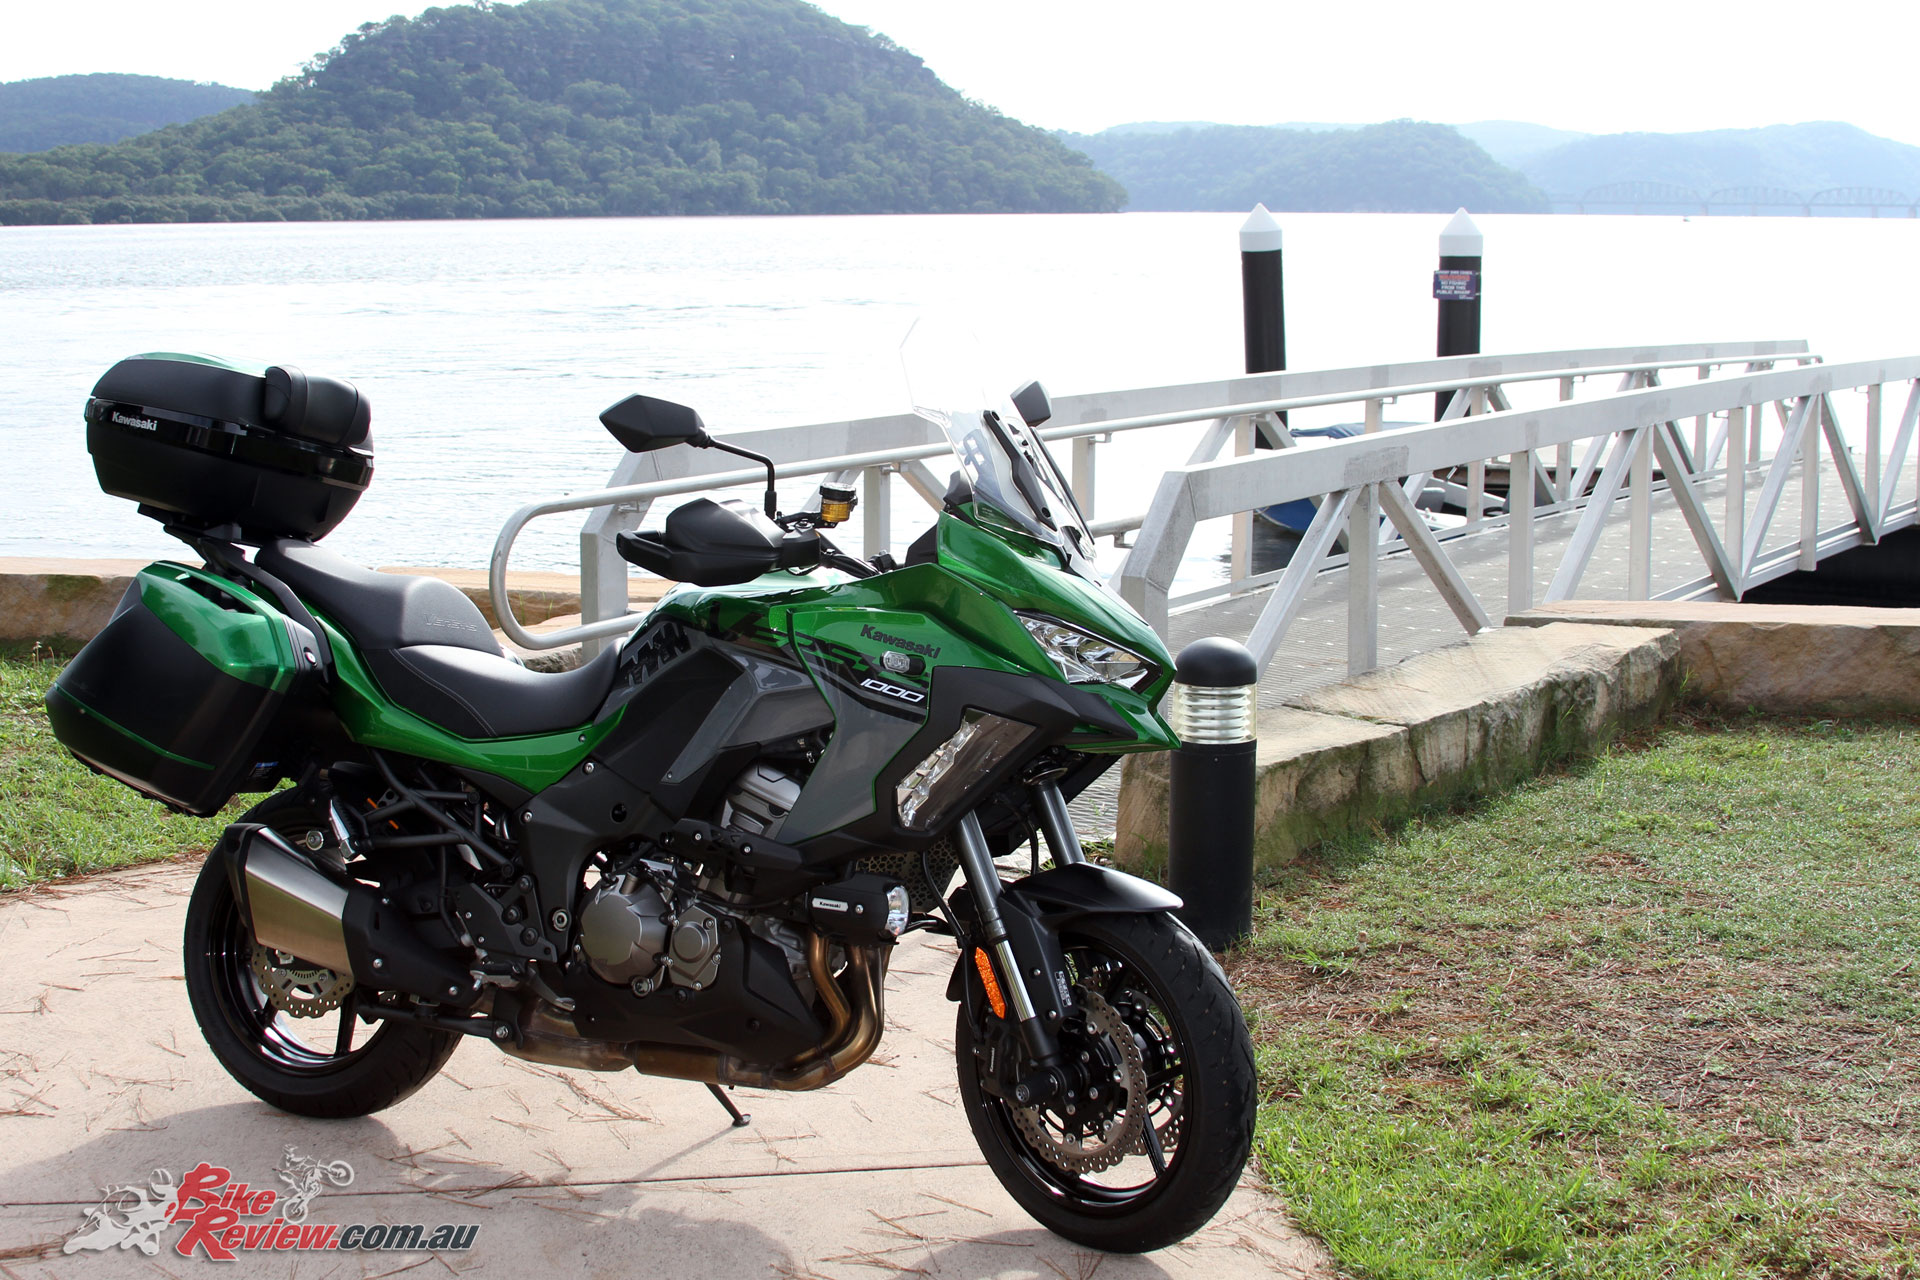 The Rider modes on the Versys 1000 SE really do offer an appreciable difference, with Rain being extremely soft, Road ideal for rough roads, and Sport my choice of all-round option.